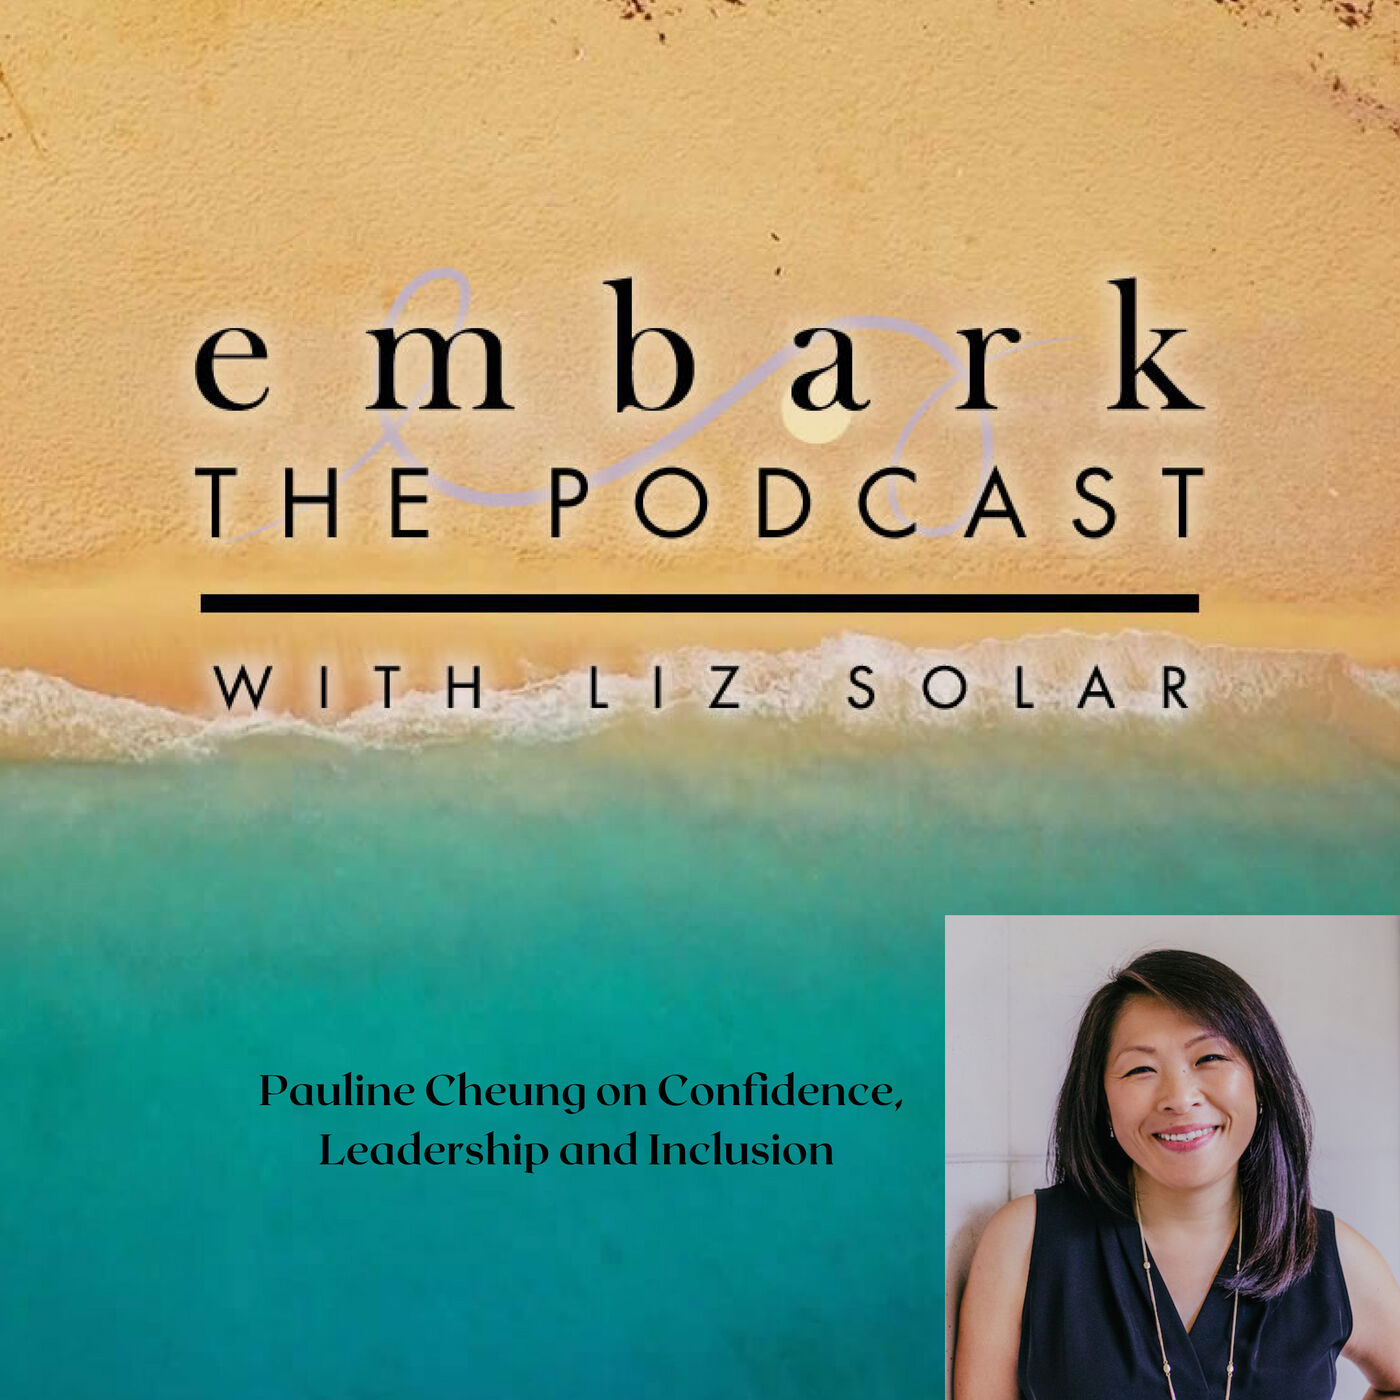 Pauline Cheung on Confidence, Leadership and Inclusion